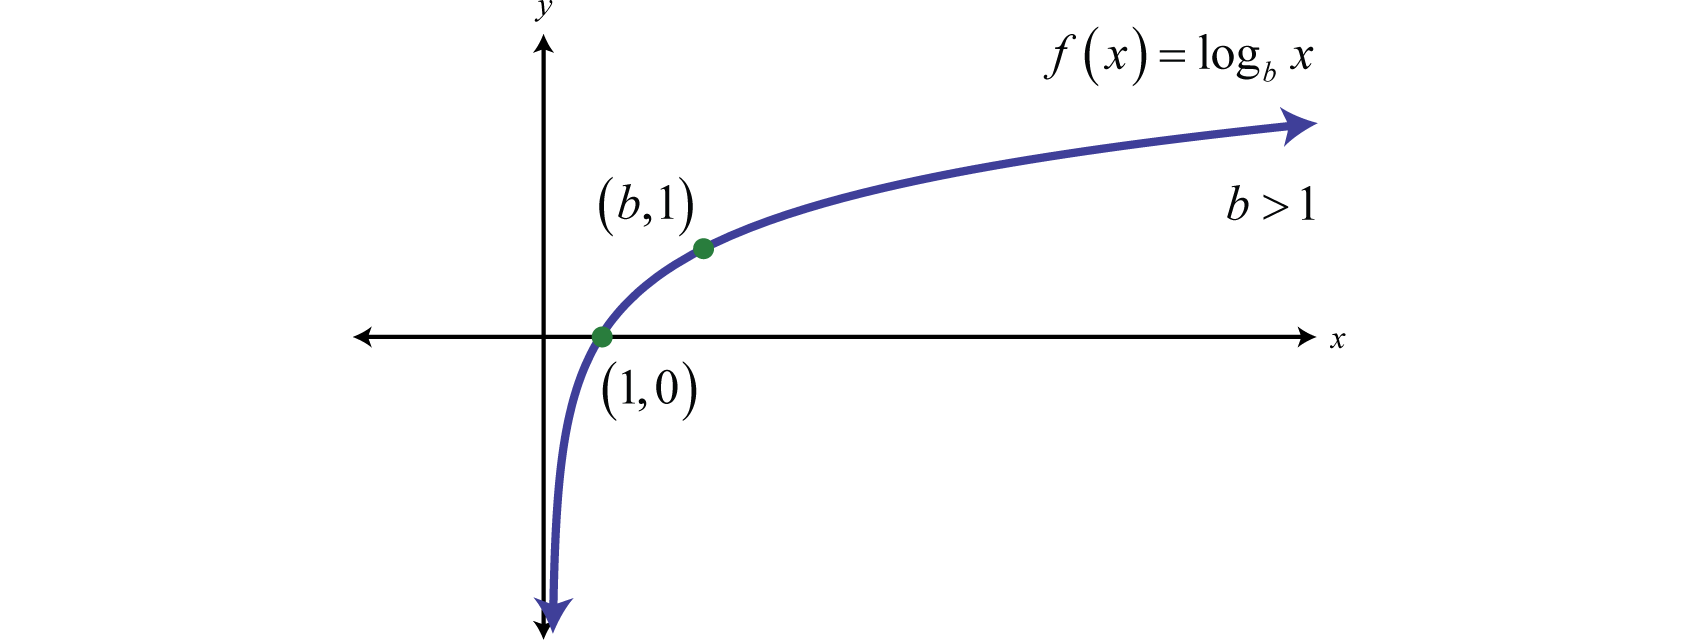 The Domain Consists Of Positive Real Numbers, (0,∞) And The Range Consists  Of All Real Numbers, (−∞,∞) The Yaxis, Or X=0, Is A Vertical Asymptote  And